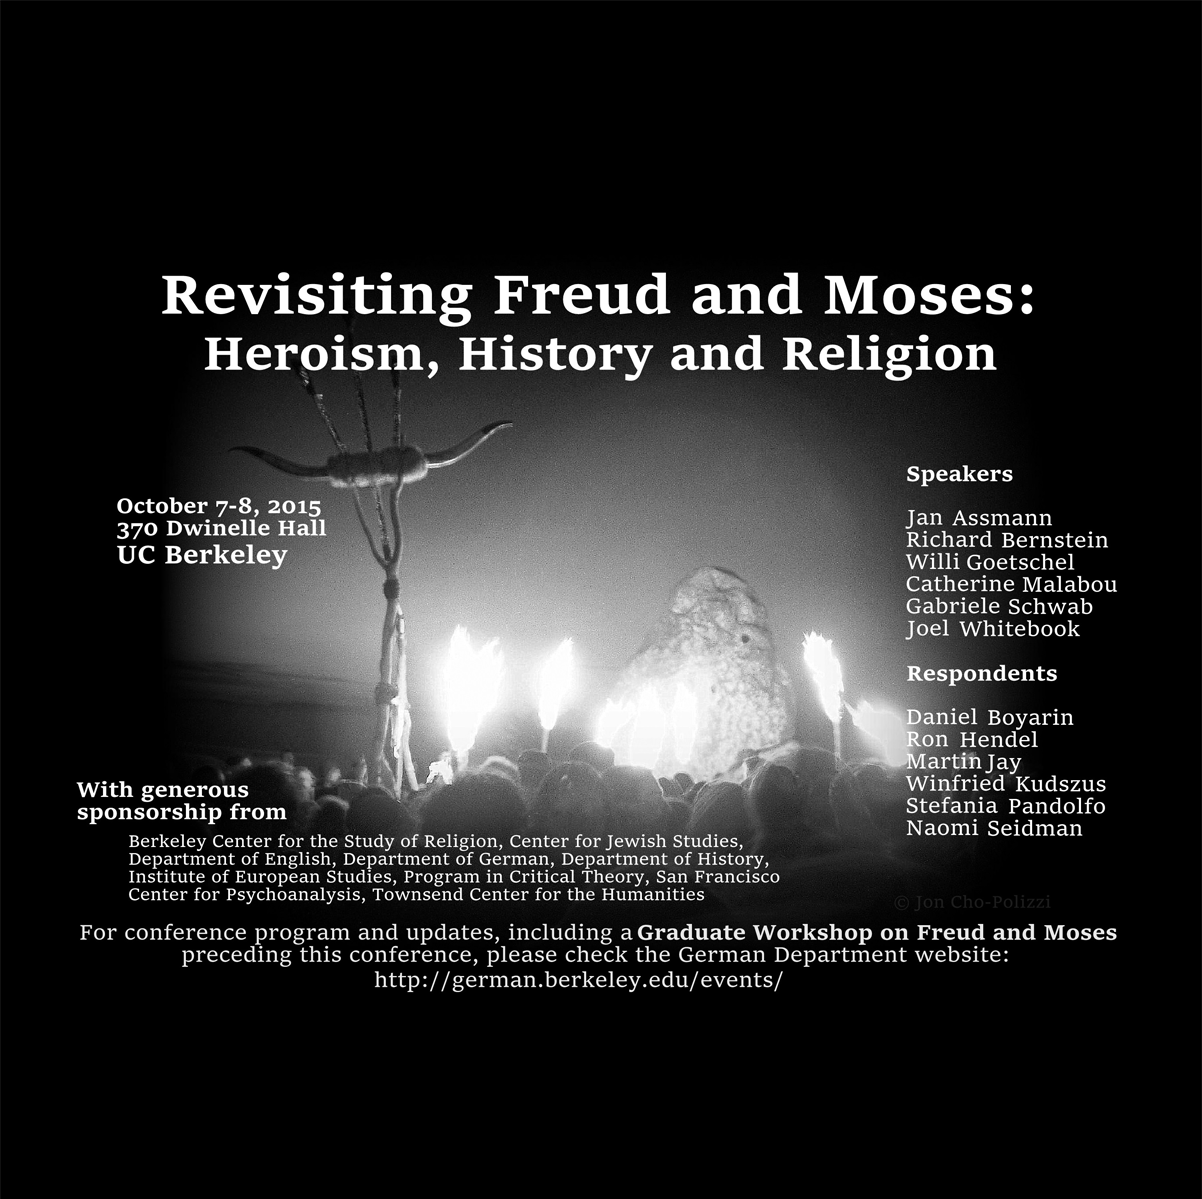 Revisiting Freud and Moses: Heroism, History and Religion